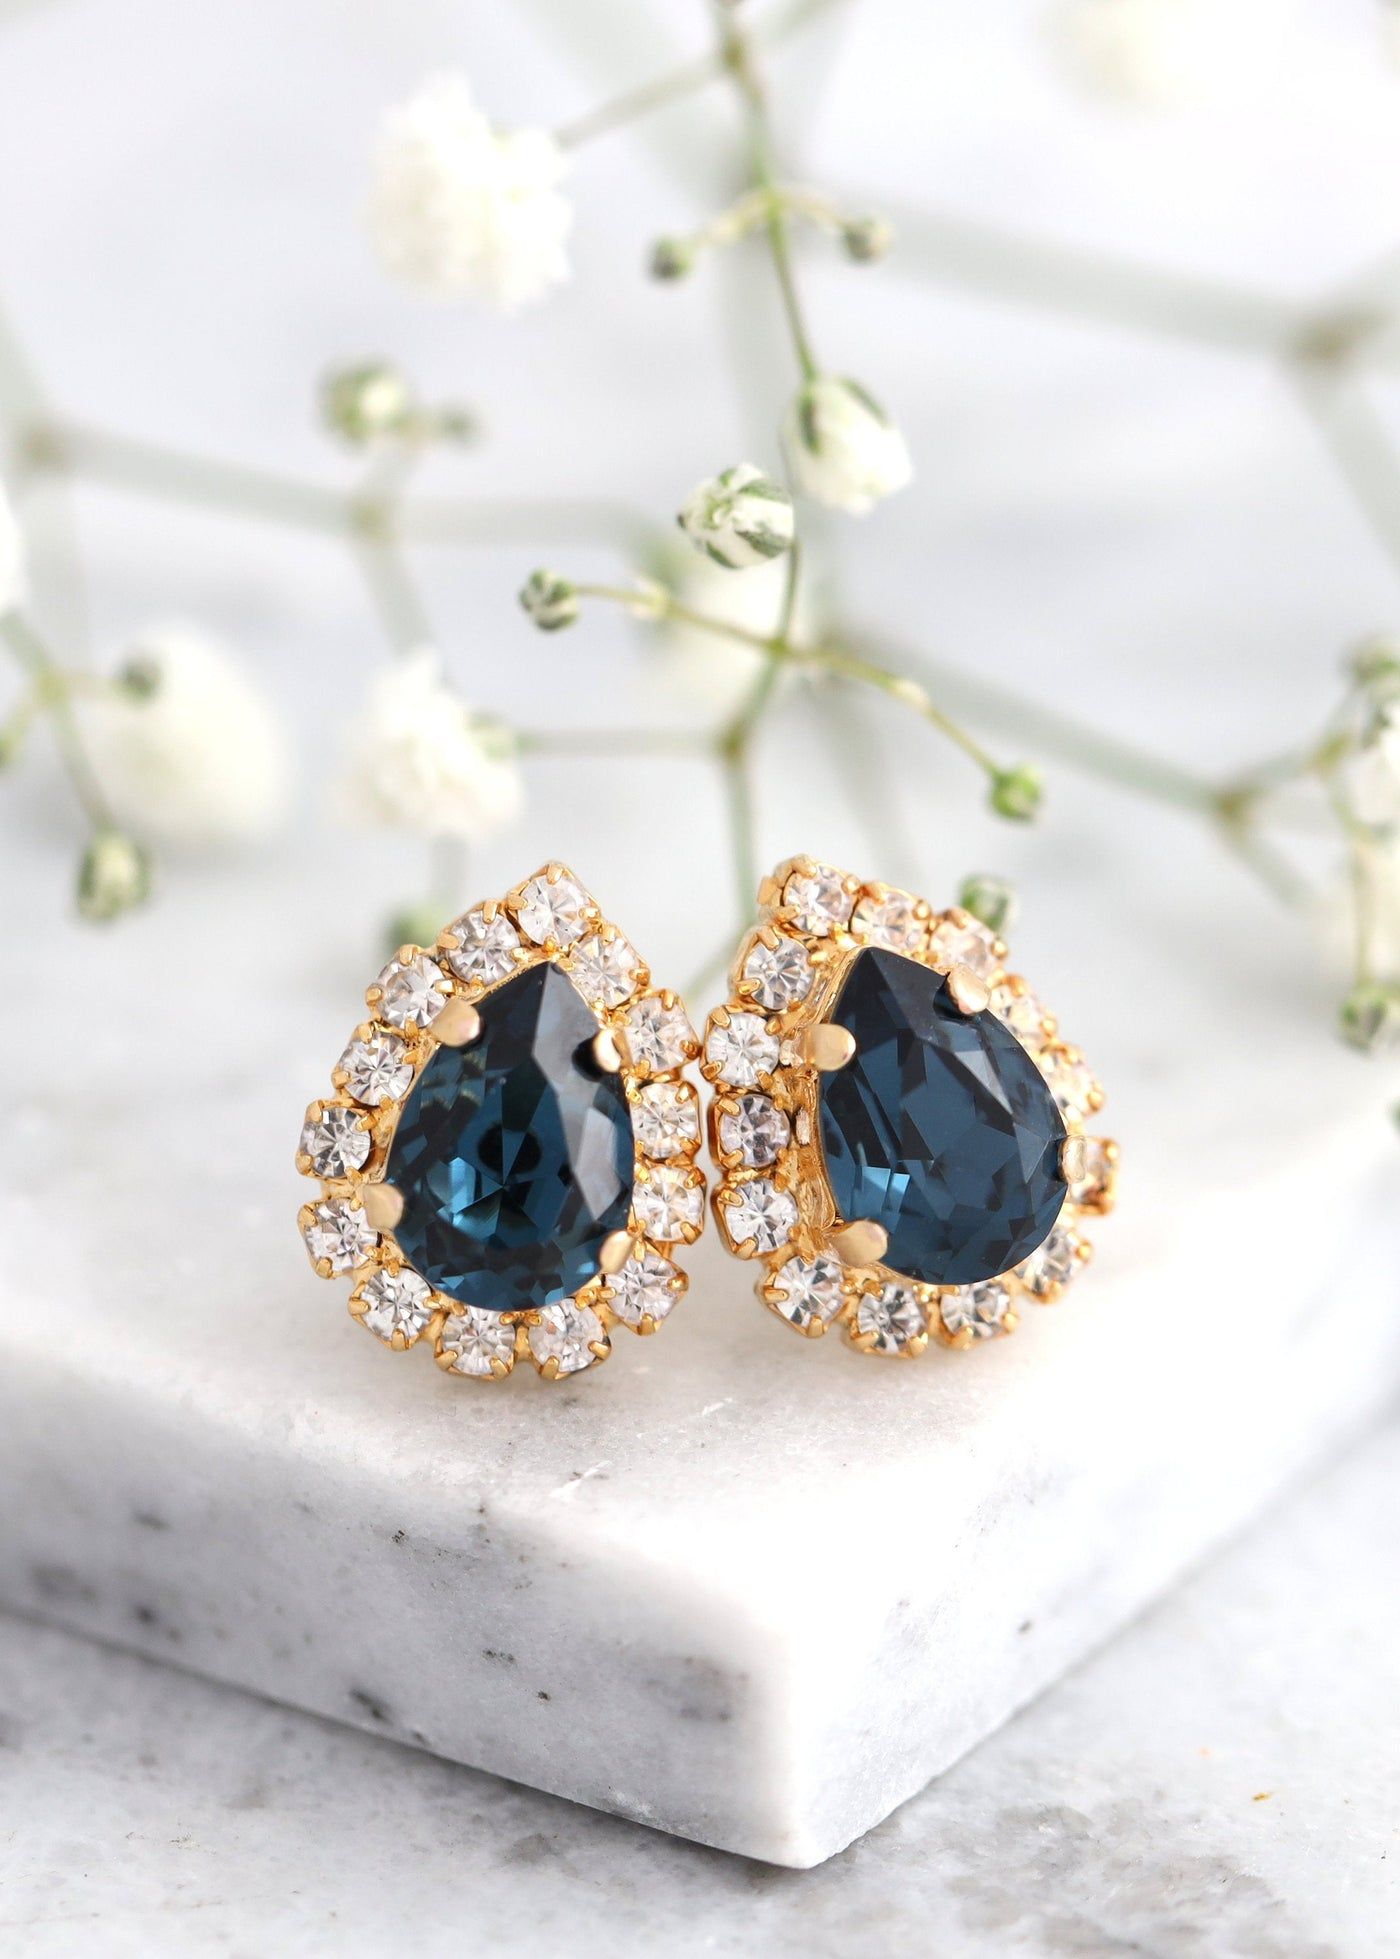 Blue Navy Earrings, Bridal Navy Blue Crystal Stud Earrings, Bridal Dark Blue Swarovski Earrings, Bridesmaids Earrings, Gift For Her